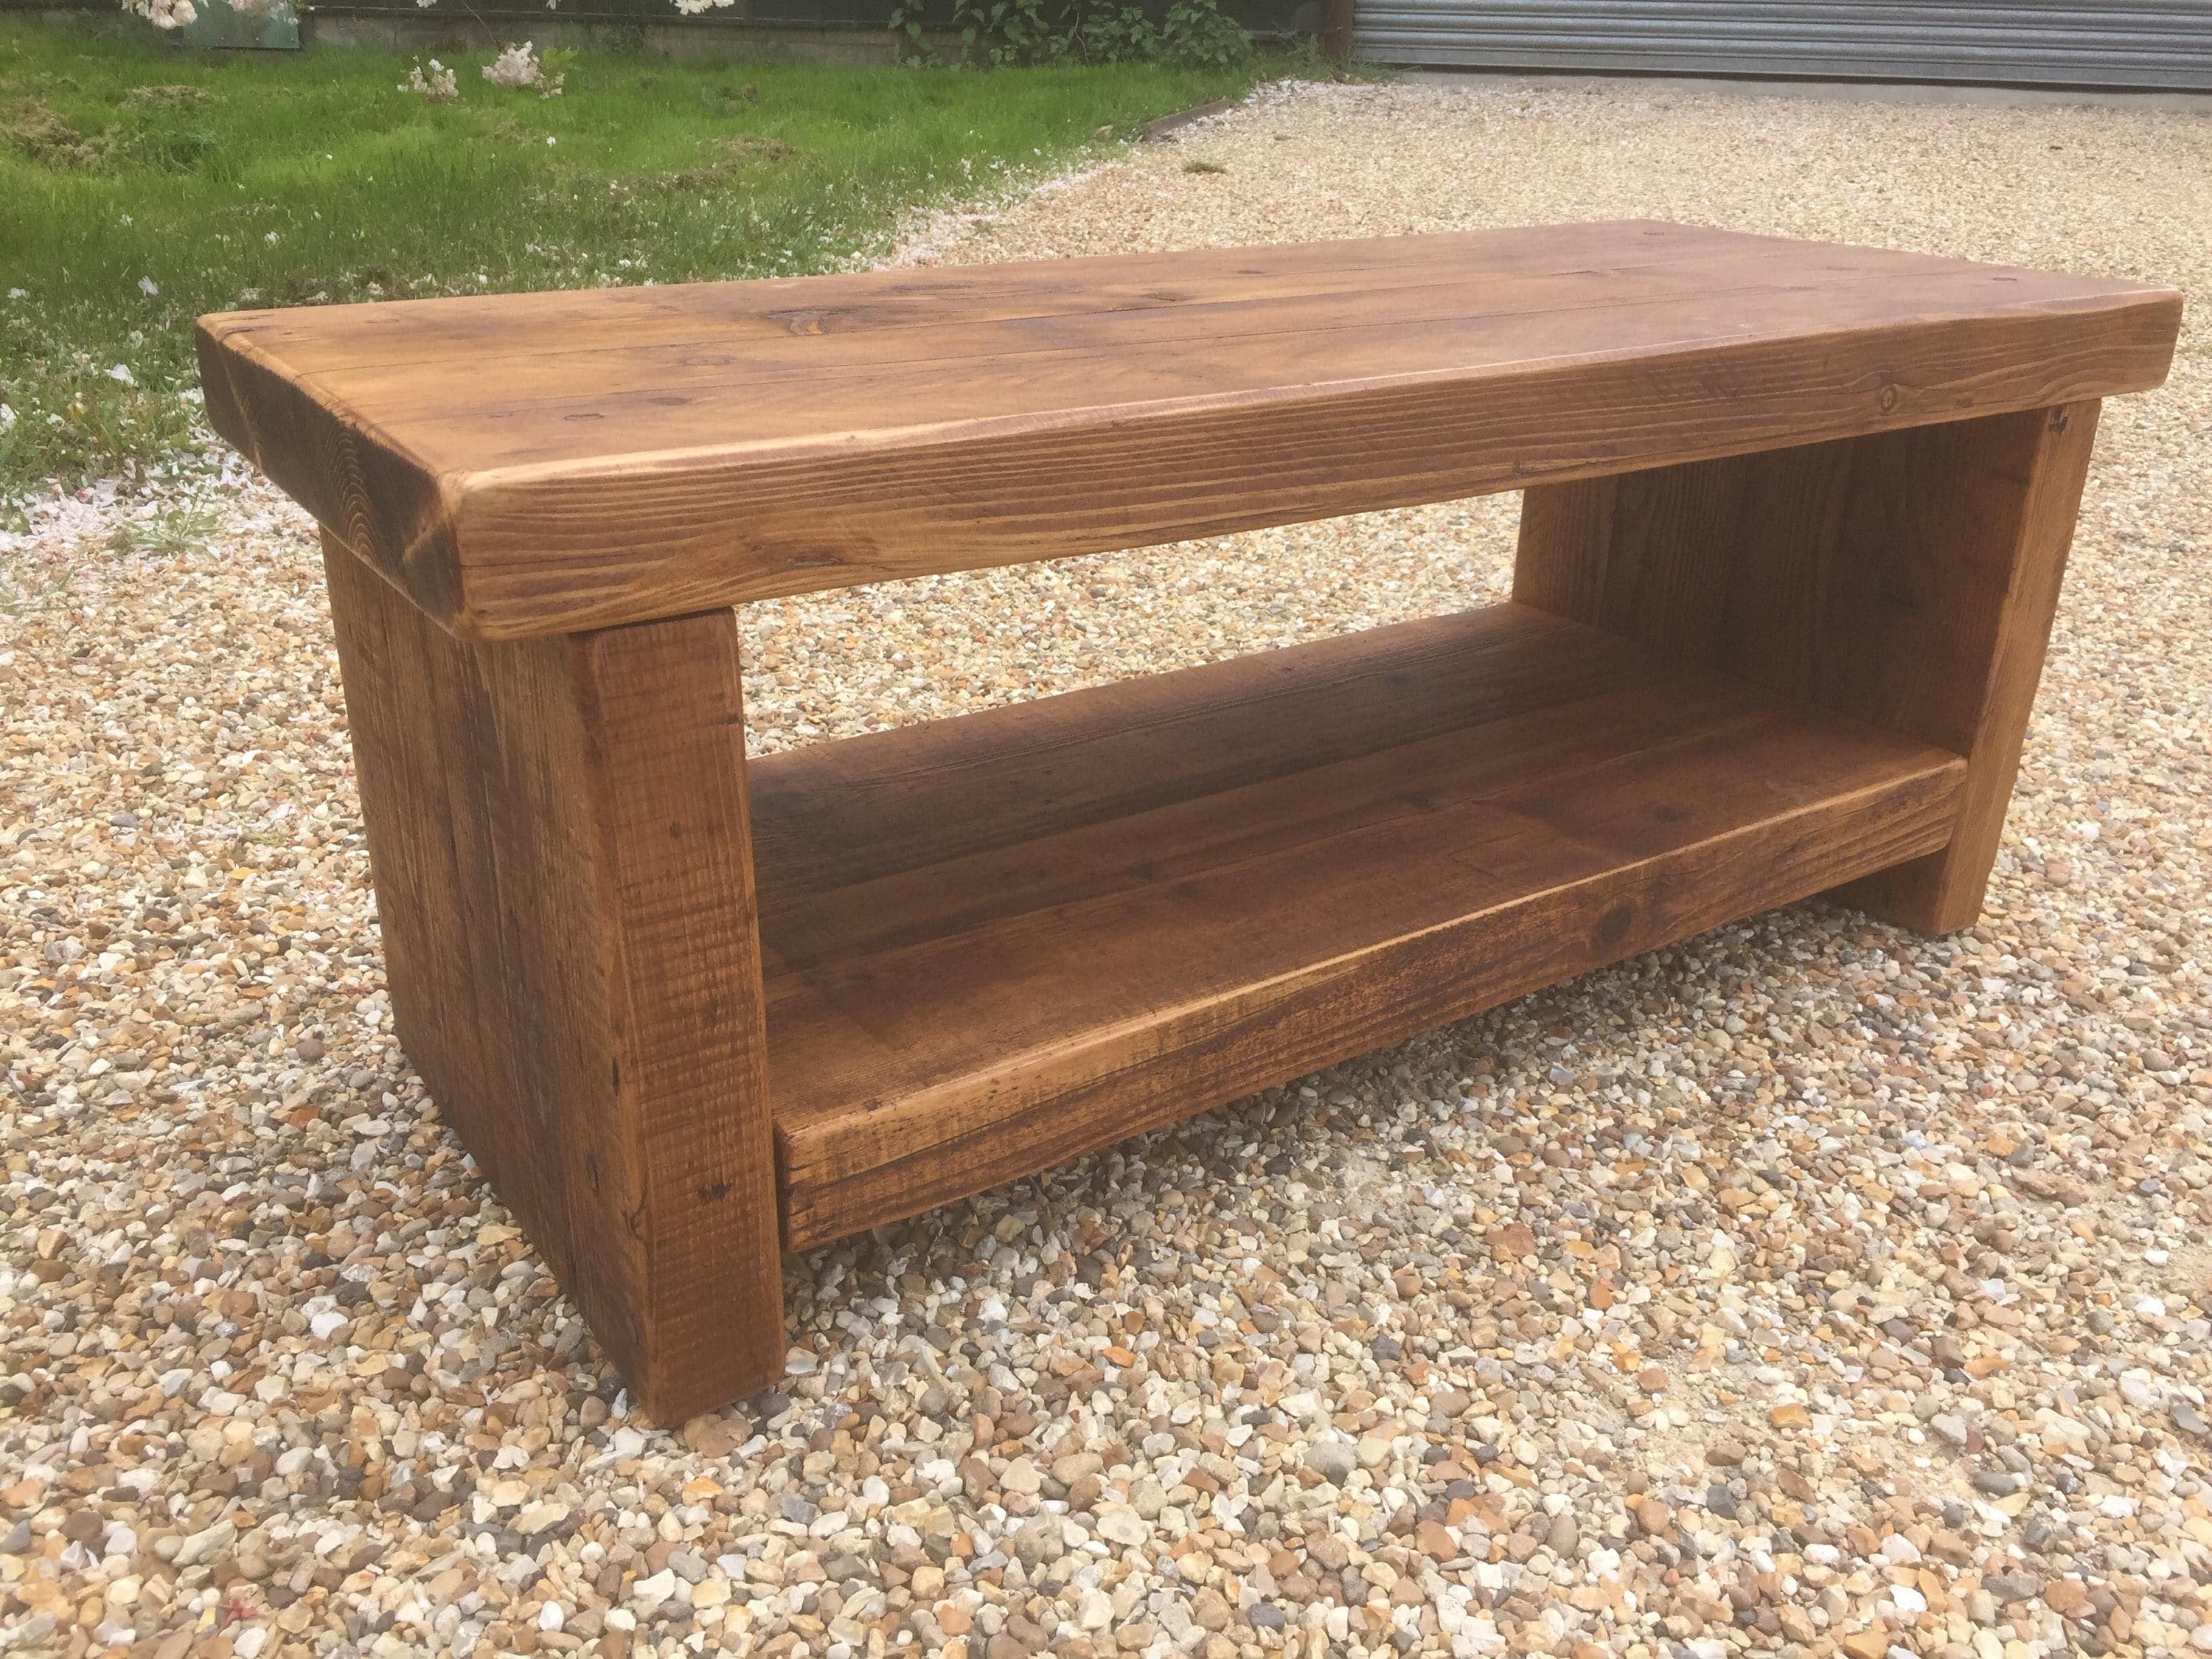 Reclaimed Bespoke Rustic Solid Pine Tv Stand Or Coffee Table With Pertaining To Current Pine Tv Stands (Gallery 4 of 20)